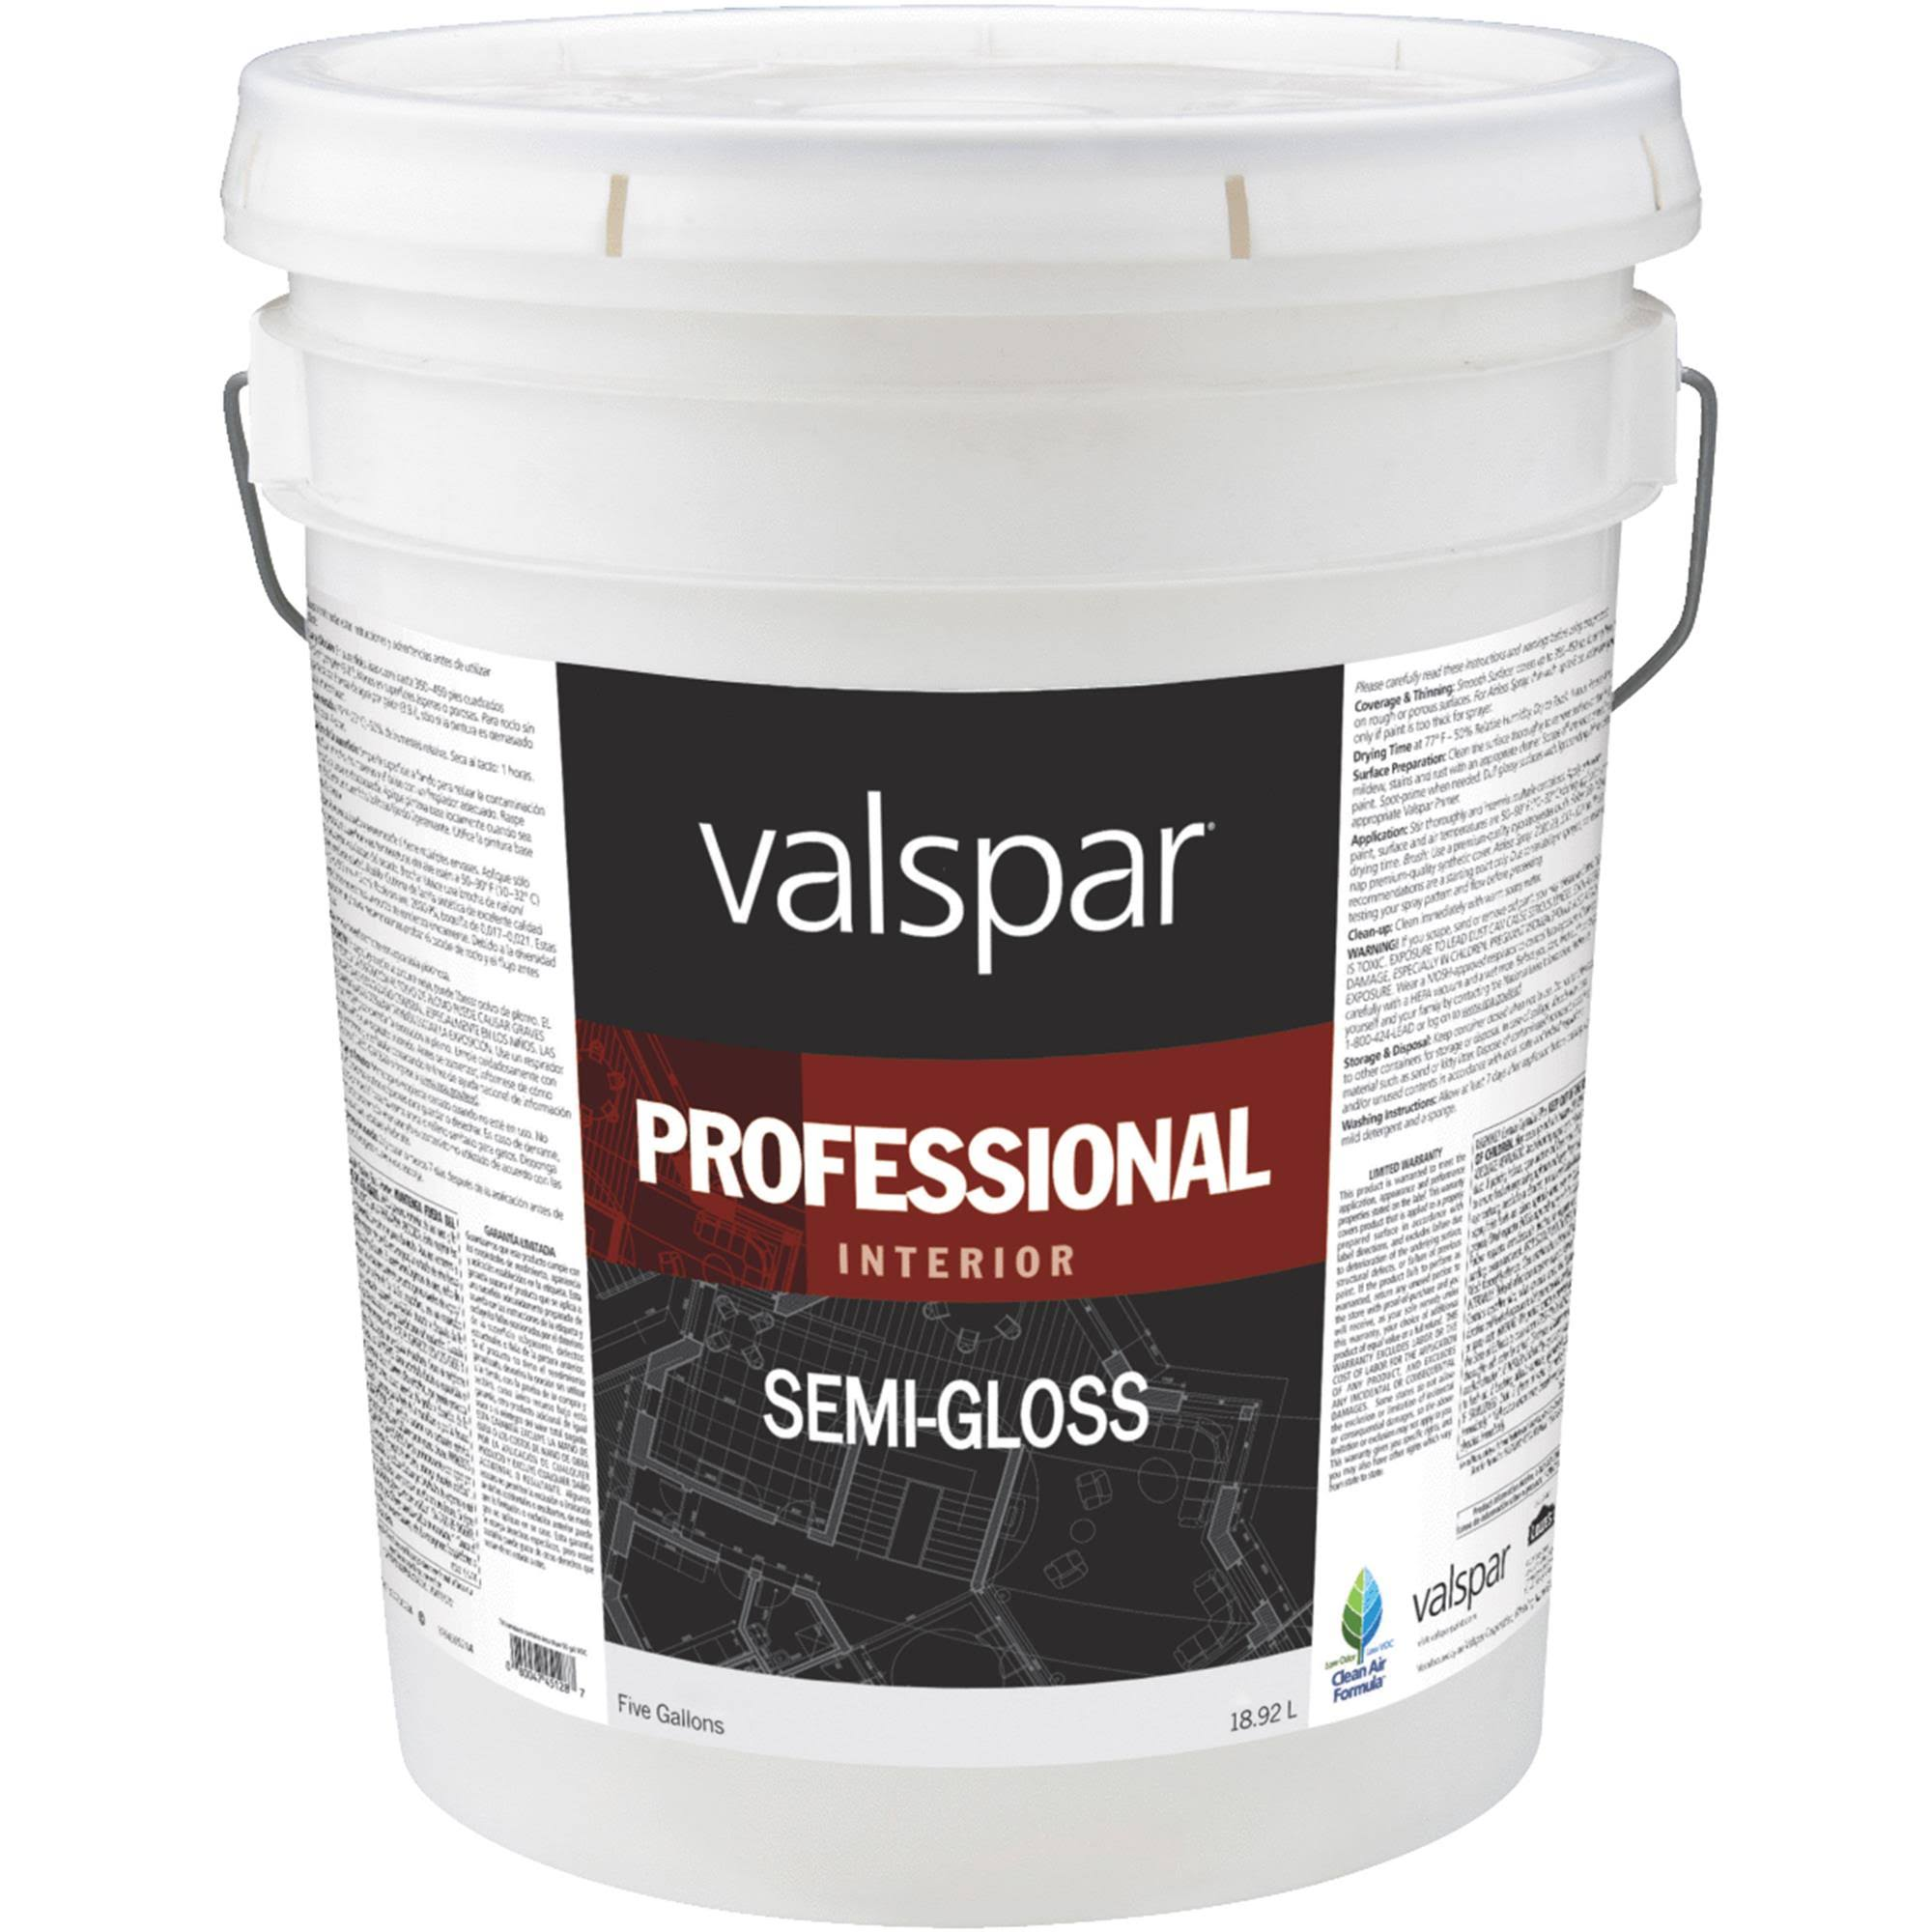 Valspar Interior High Hide Latex Paint - White, Semi Gloss, 5gal